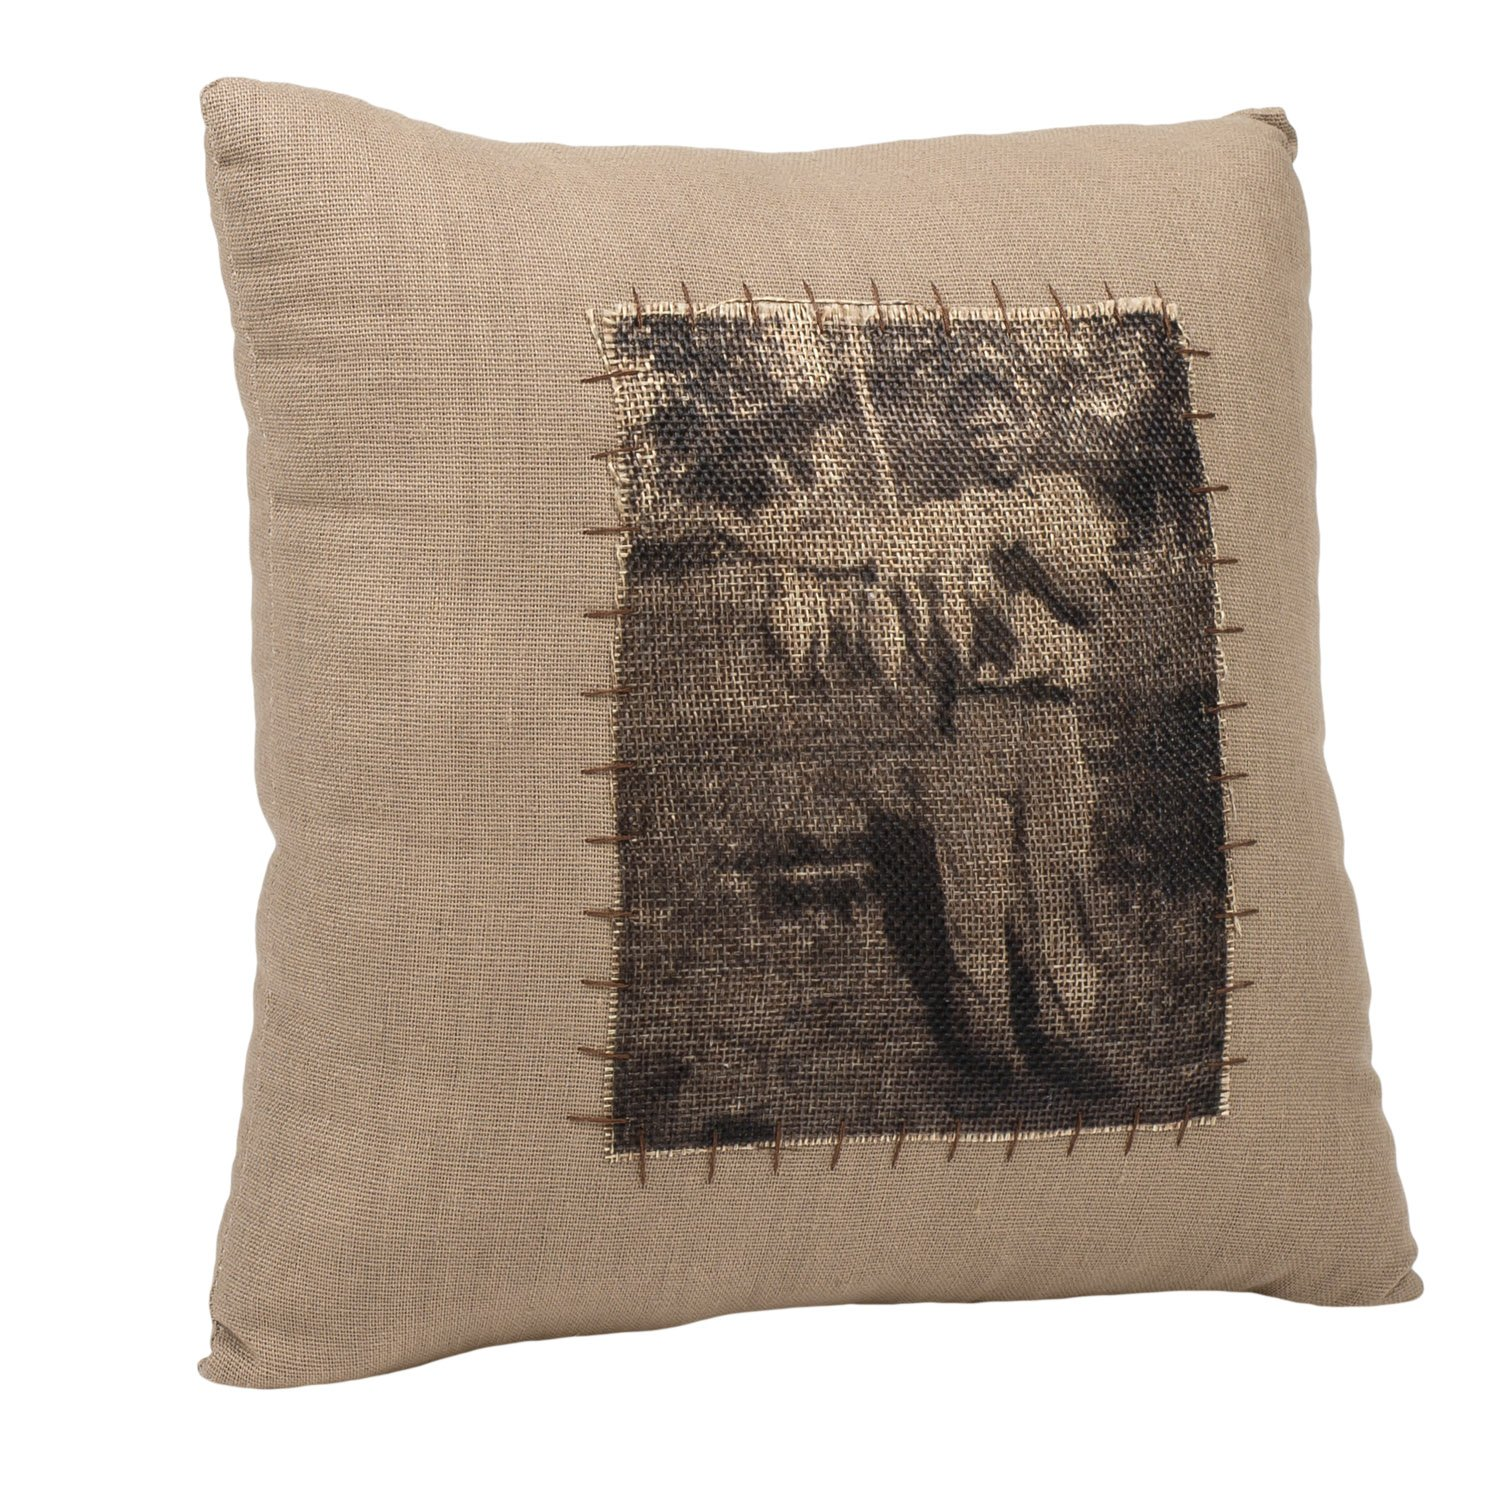 Grandpa Fishing Vintage Print 10 x 10 Canvas and Burlap Decorative Throw Pillow